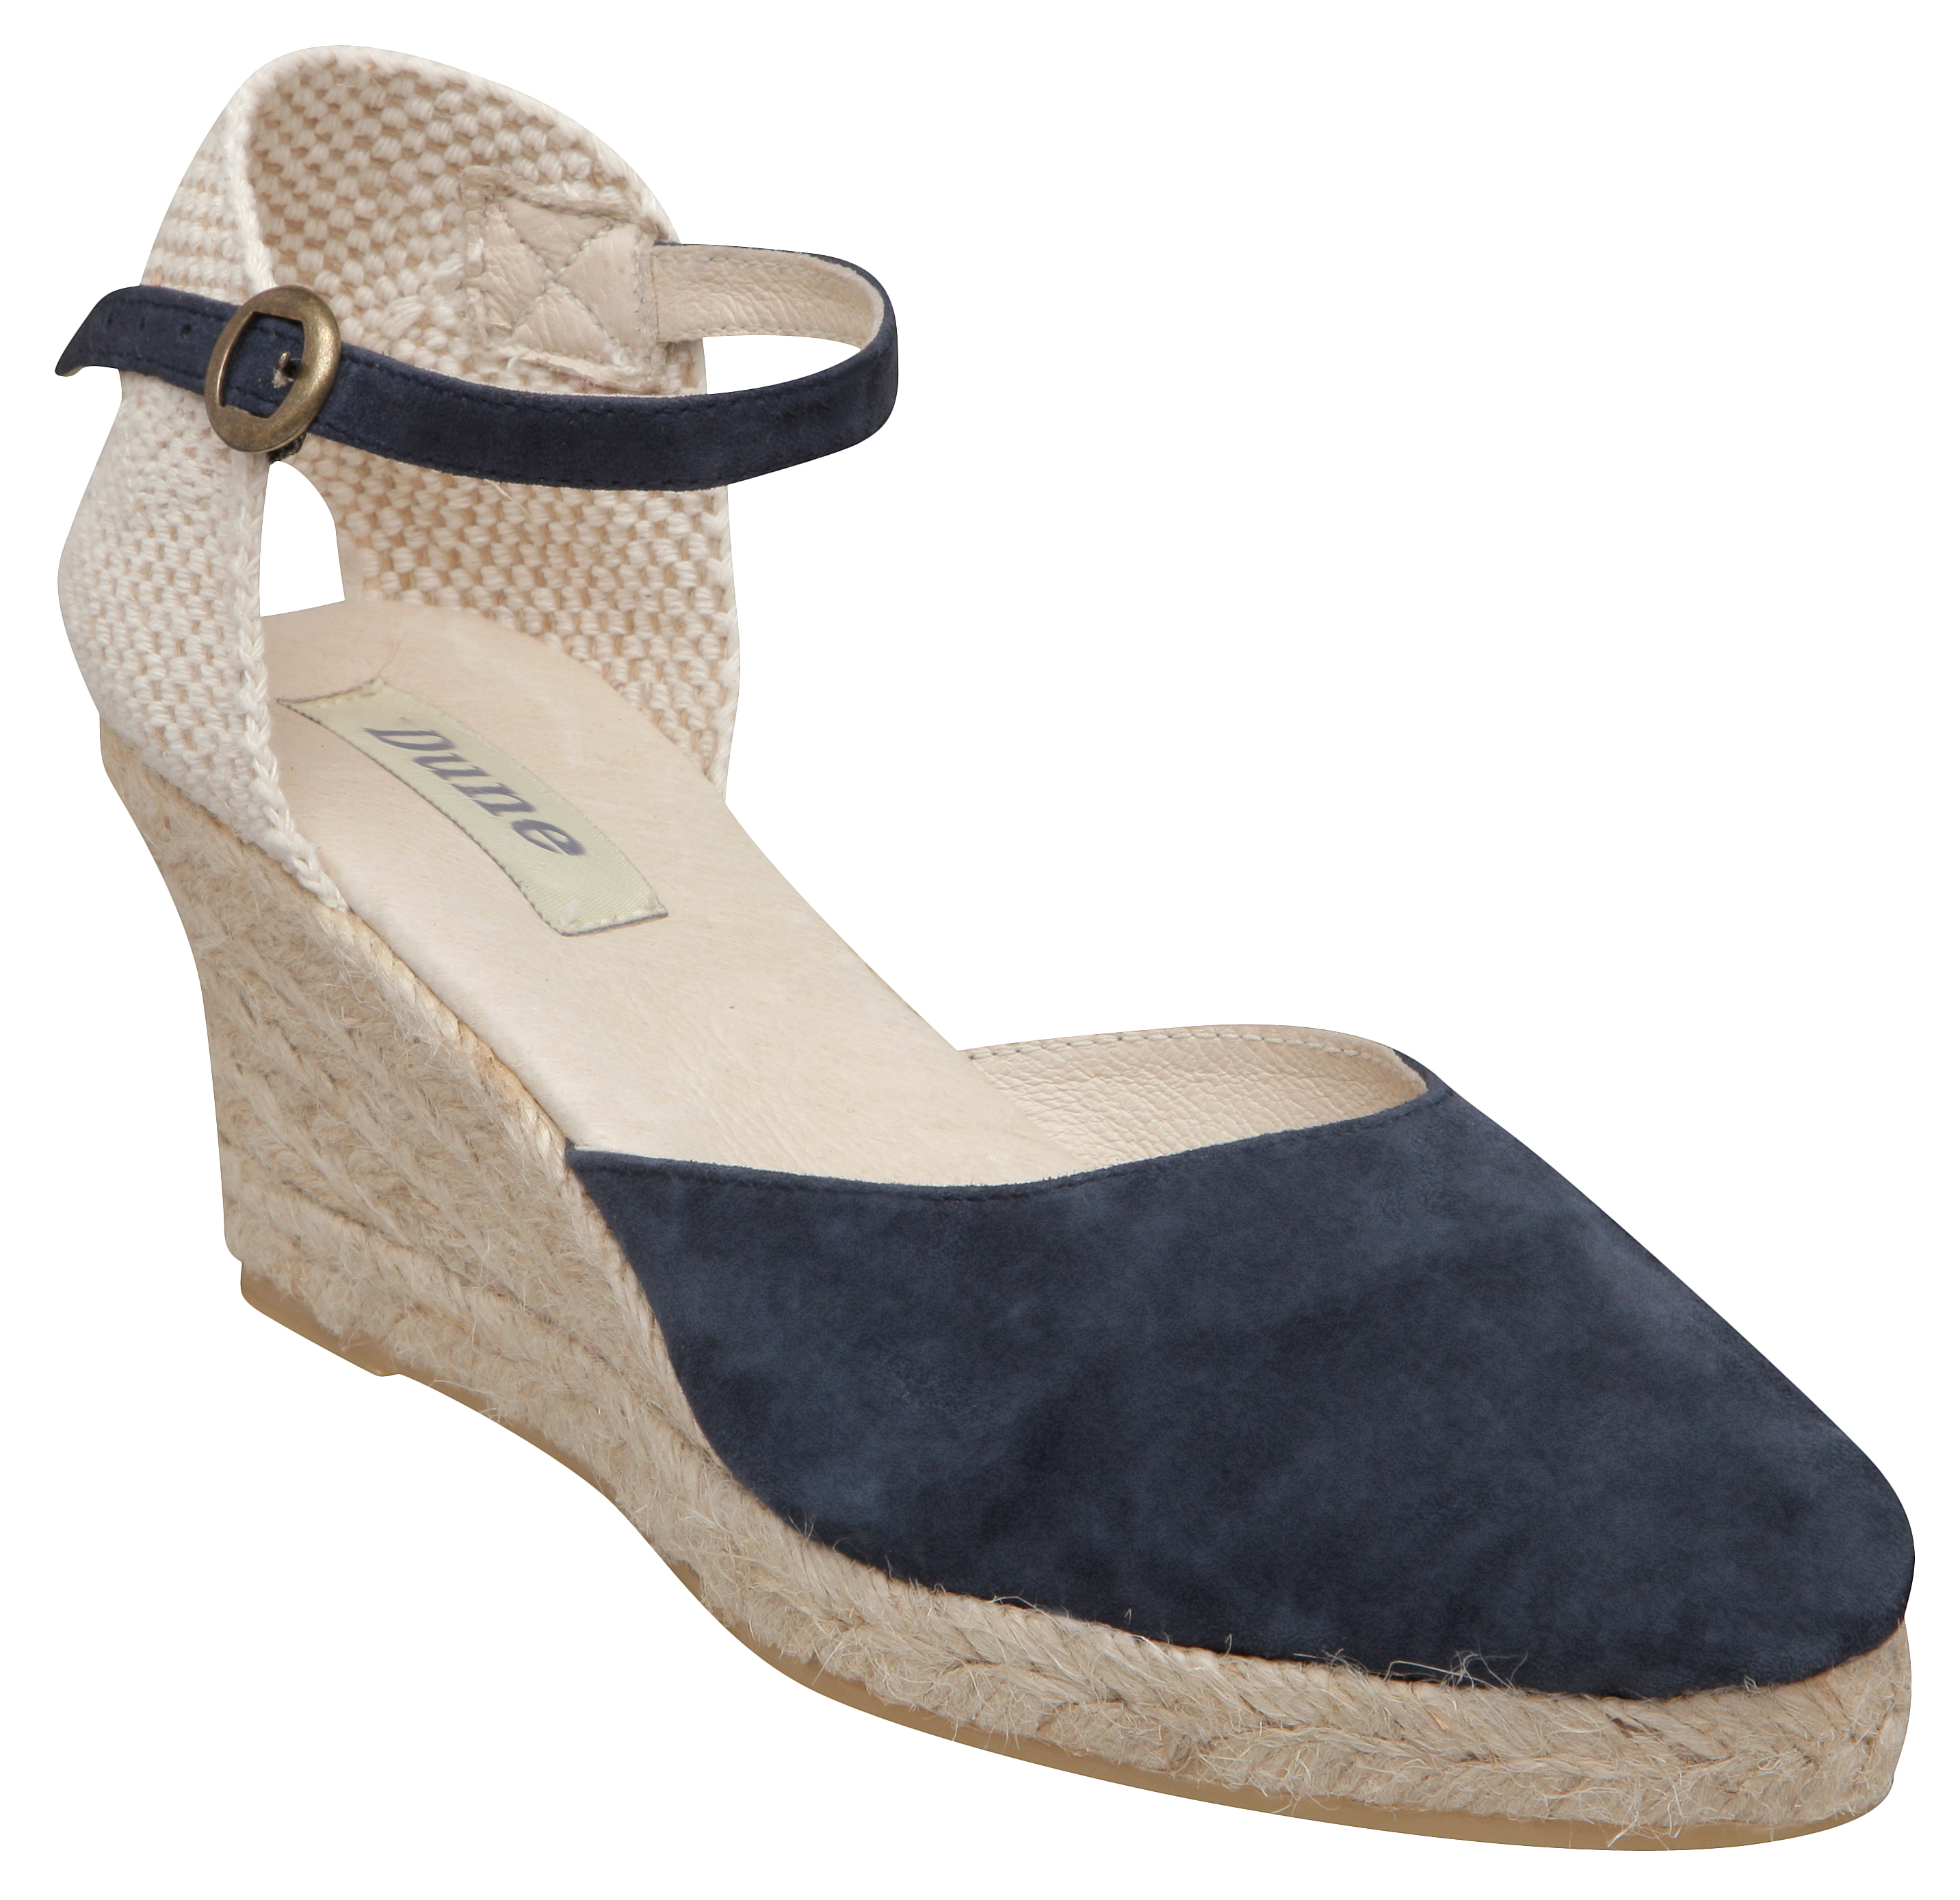 Awesome With A Twopiece DOrsay Upper, Crisscross Laces And Ropefinished Wedge Heel, These Dv Womens Manica LaceUp Wedges Are The Definition Of Laidback, Espasdrille Chic Finished In Luxe Faux Suede, Style With Cropped Pants, Shorts,